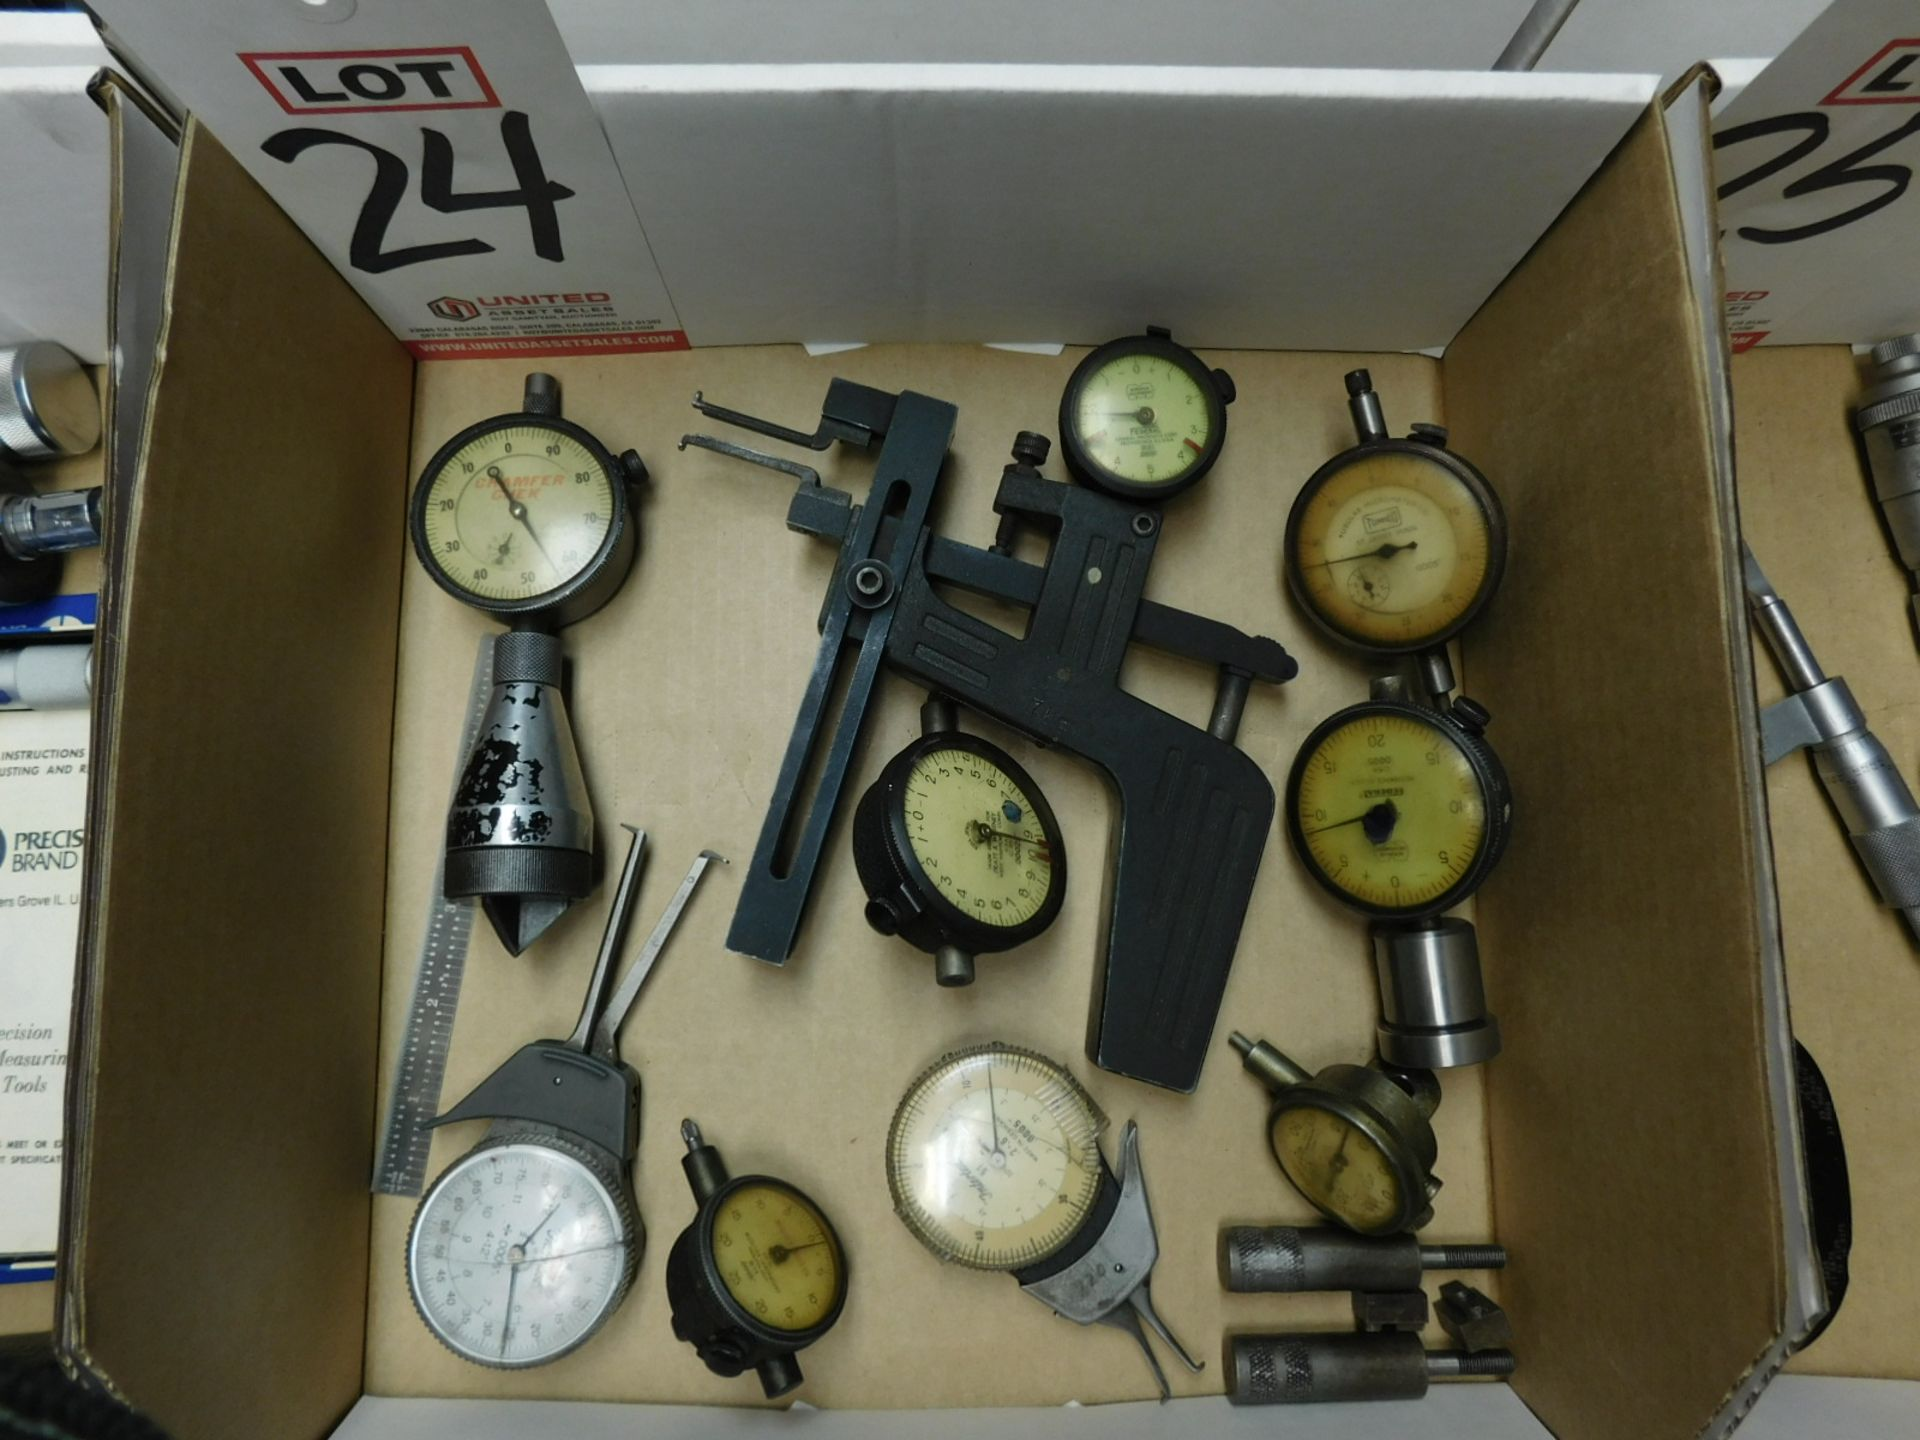 Lot 24 - LOT - (1) MUELLER GROOVE GAGE, PLUS (8) OTHER GAGES